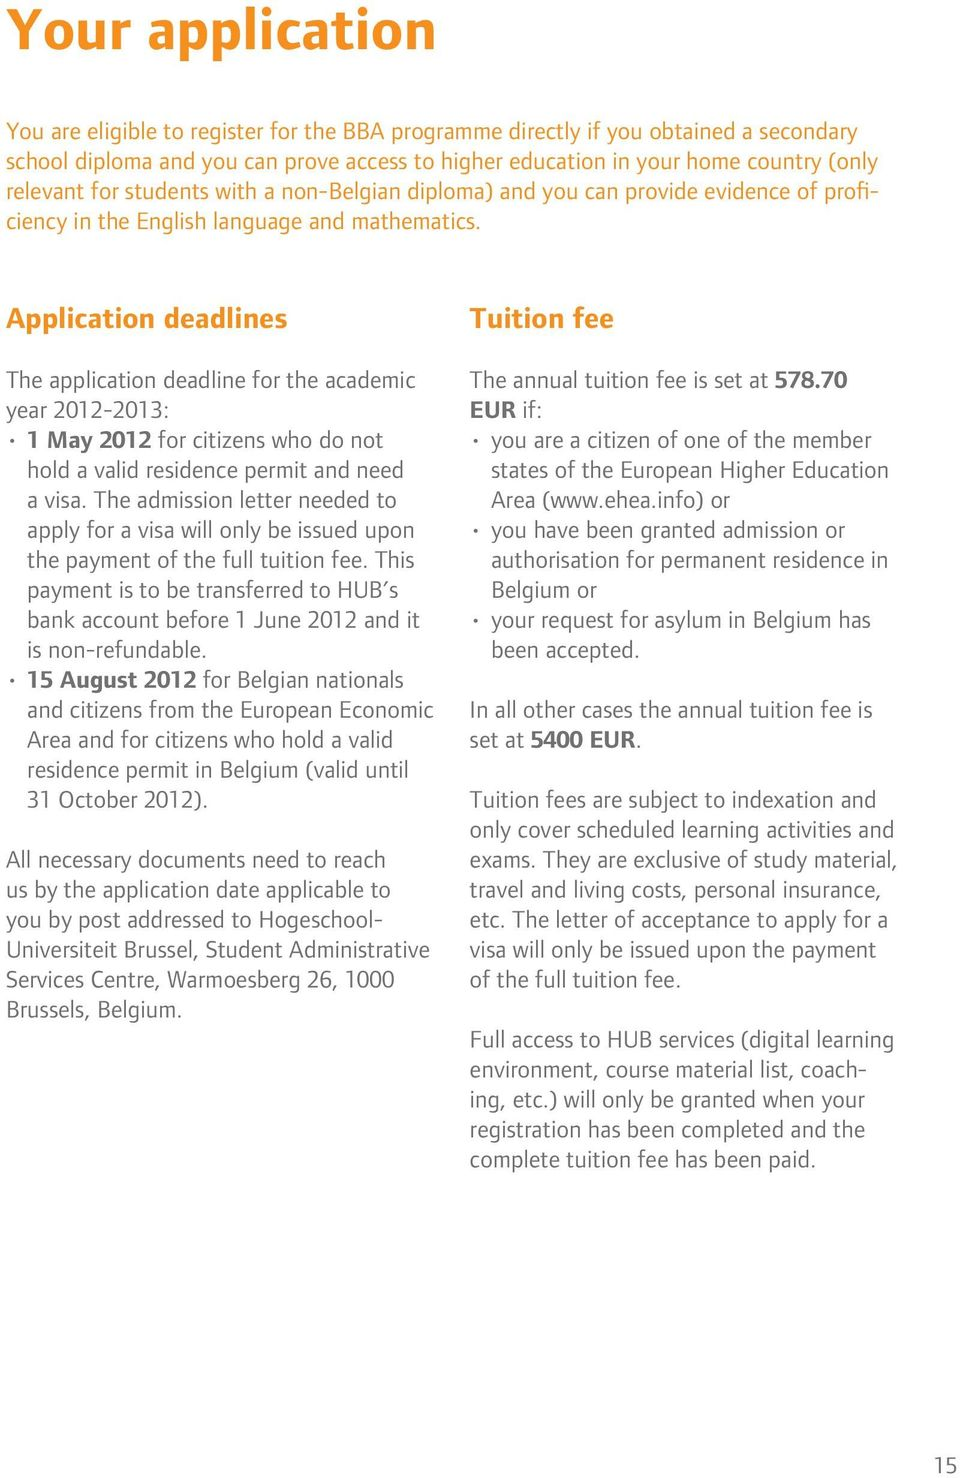 Application deadlines The application deadline for the academic year 2012-2013: 1 May 2012 for citizens who do not hold a valid residence permit and need a visa.